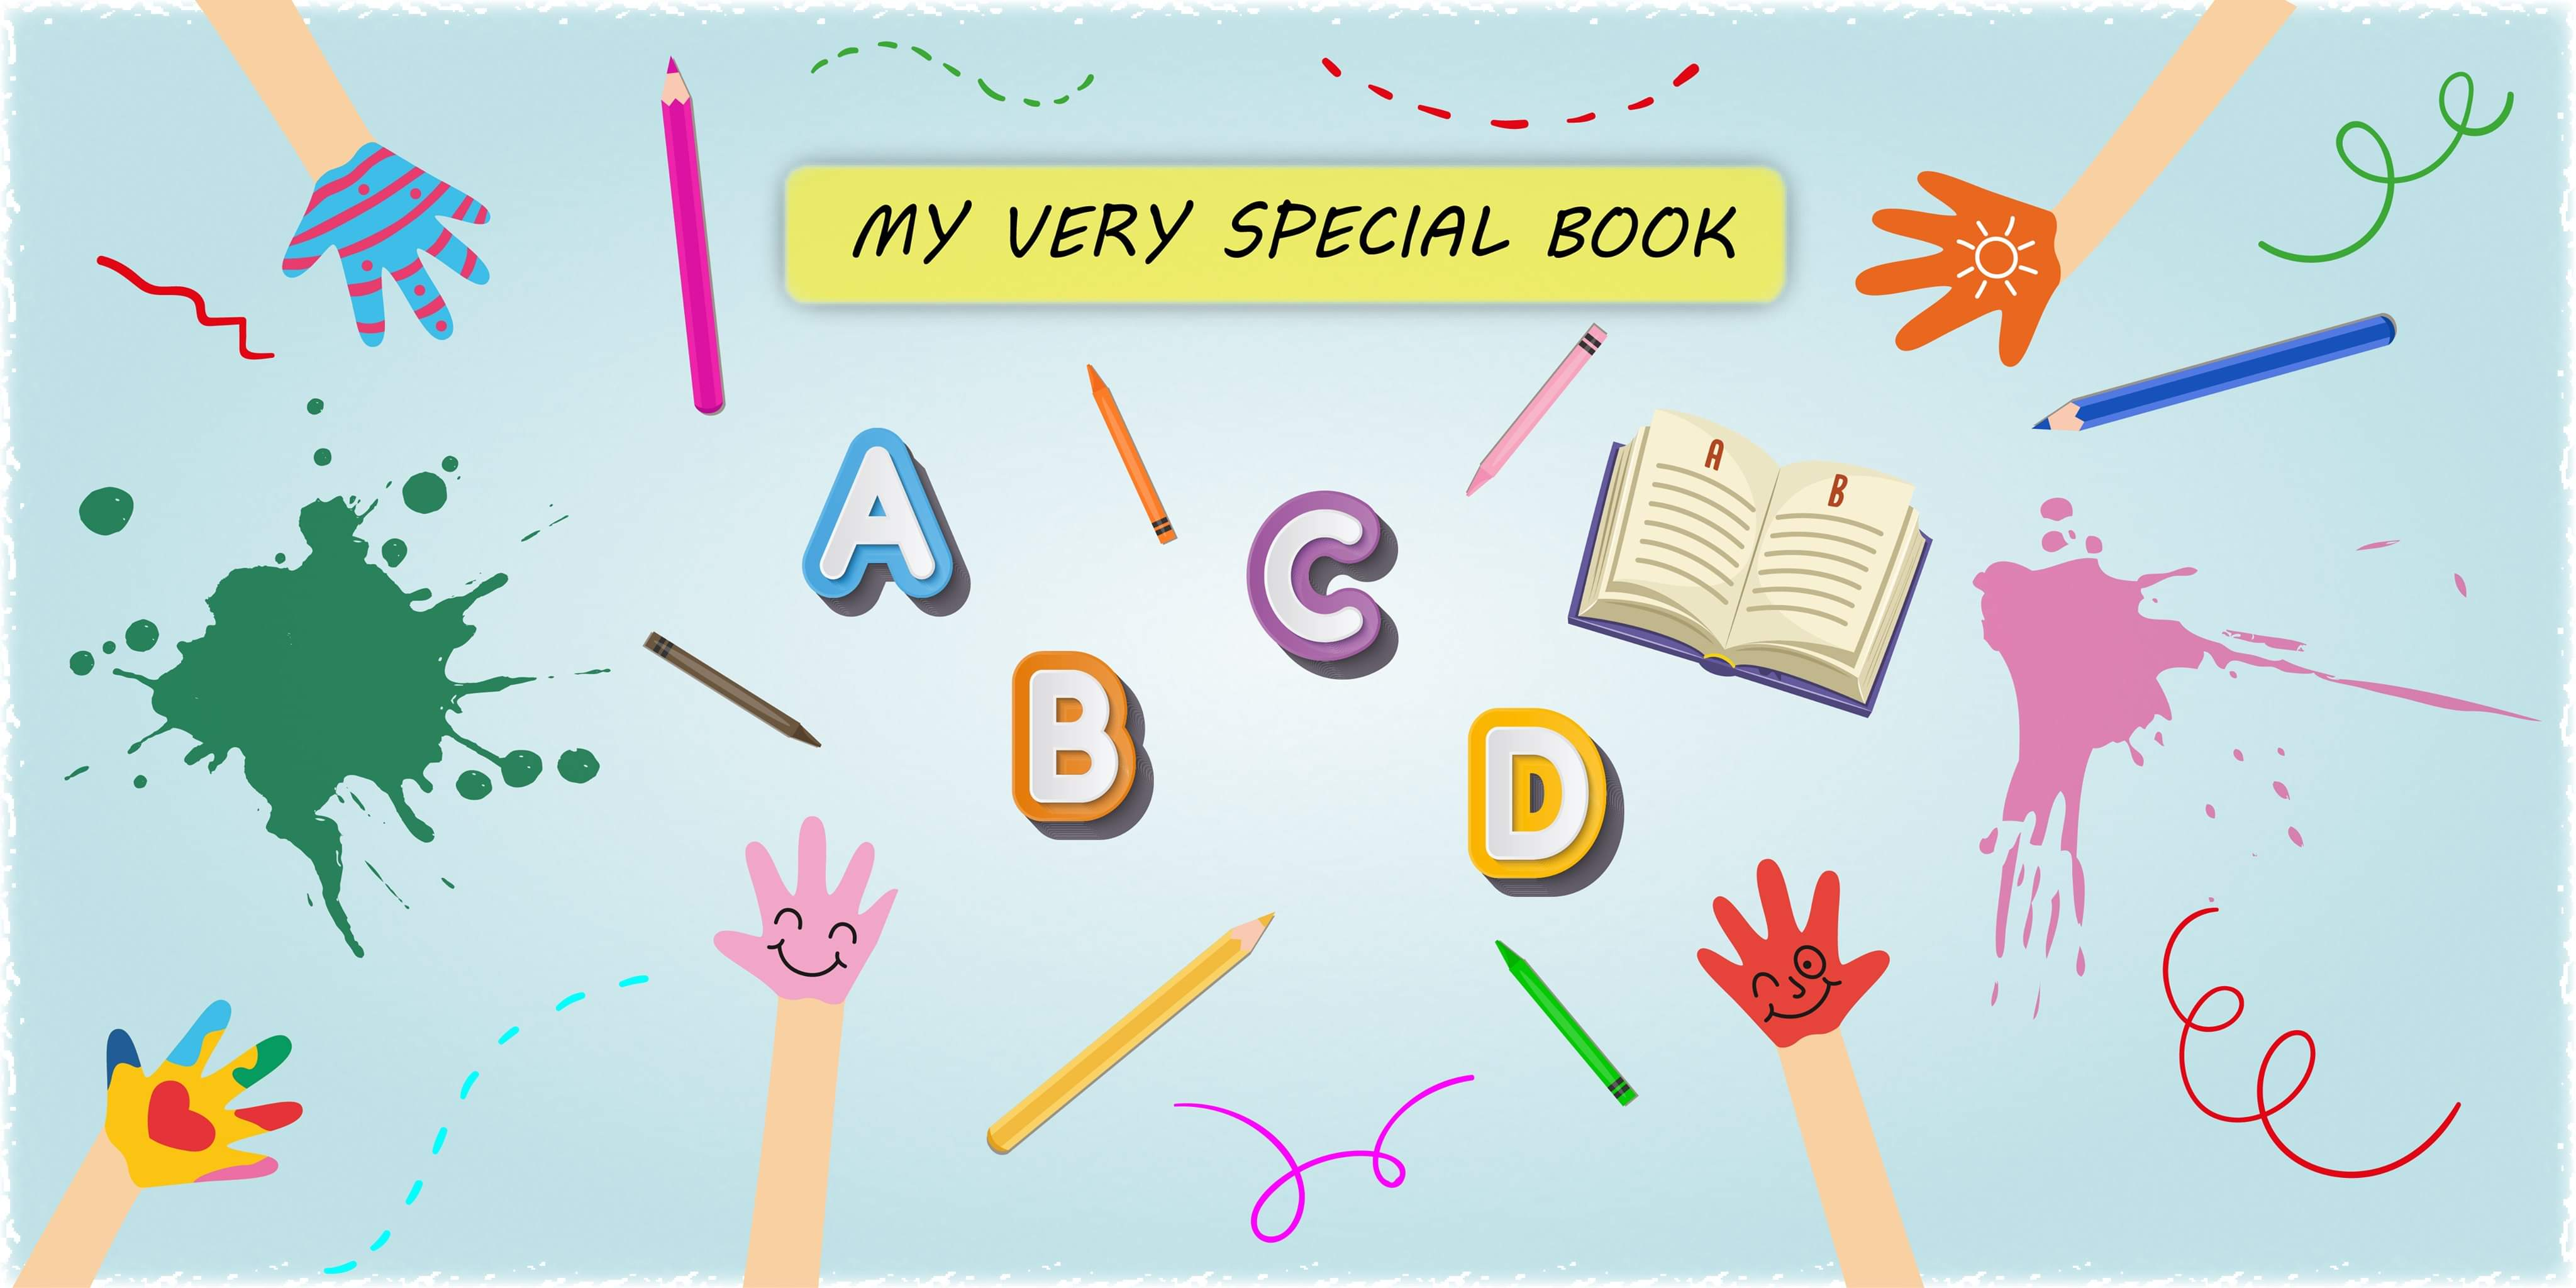 My very special book